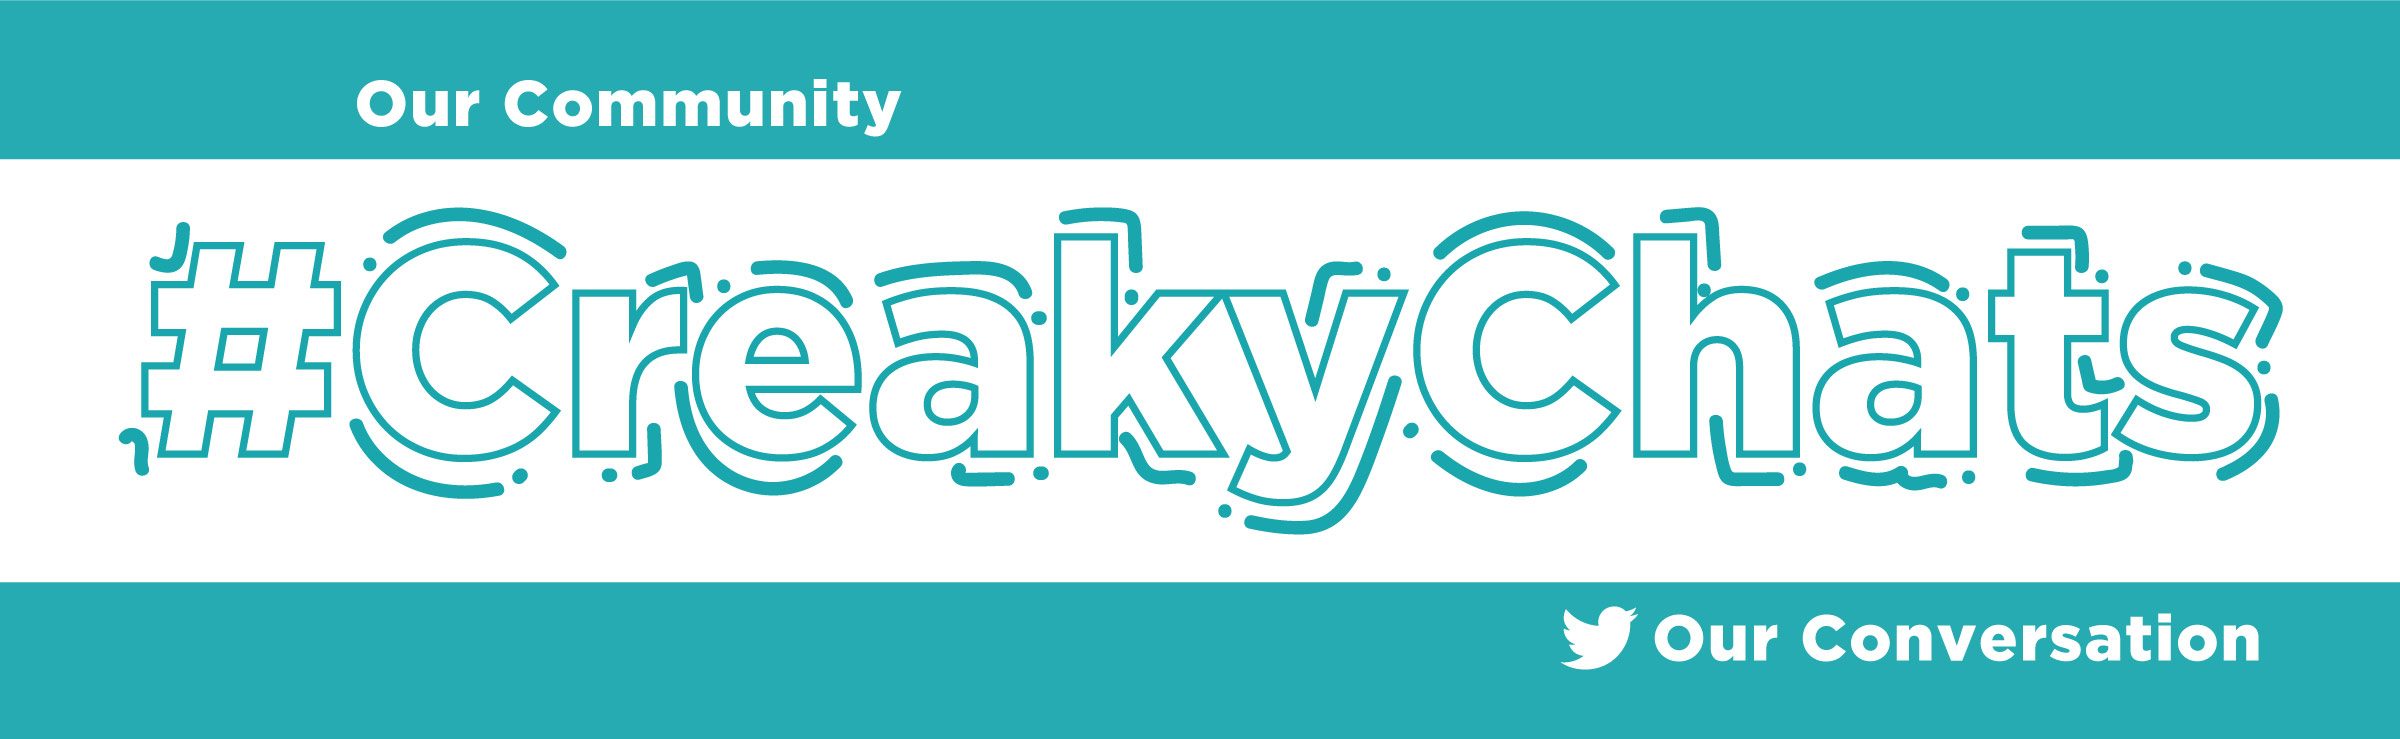 Creaky Chats Twitter Chat Banner